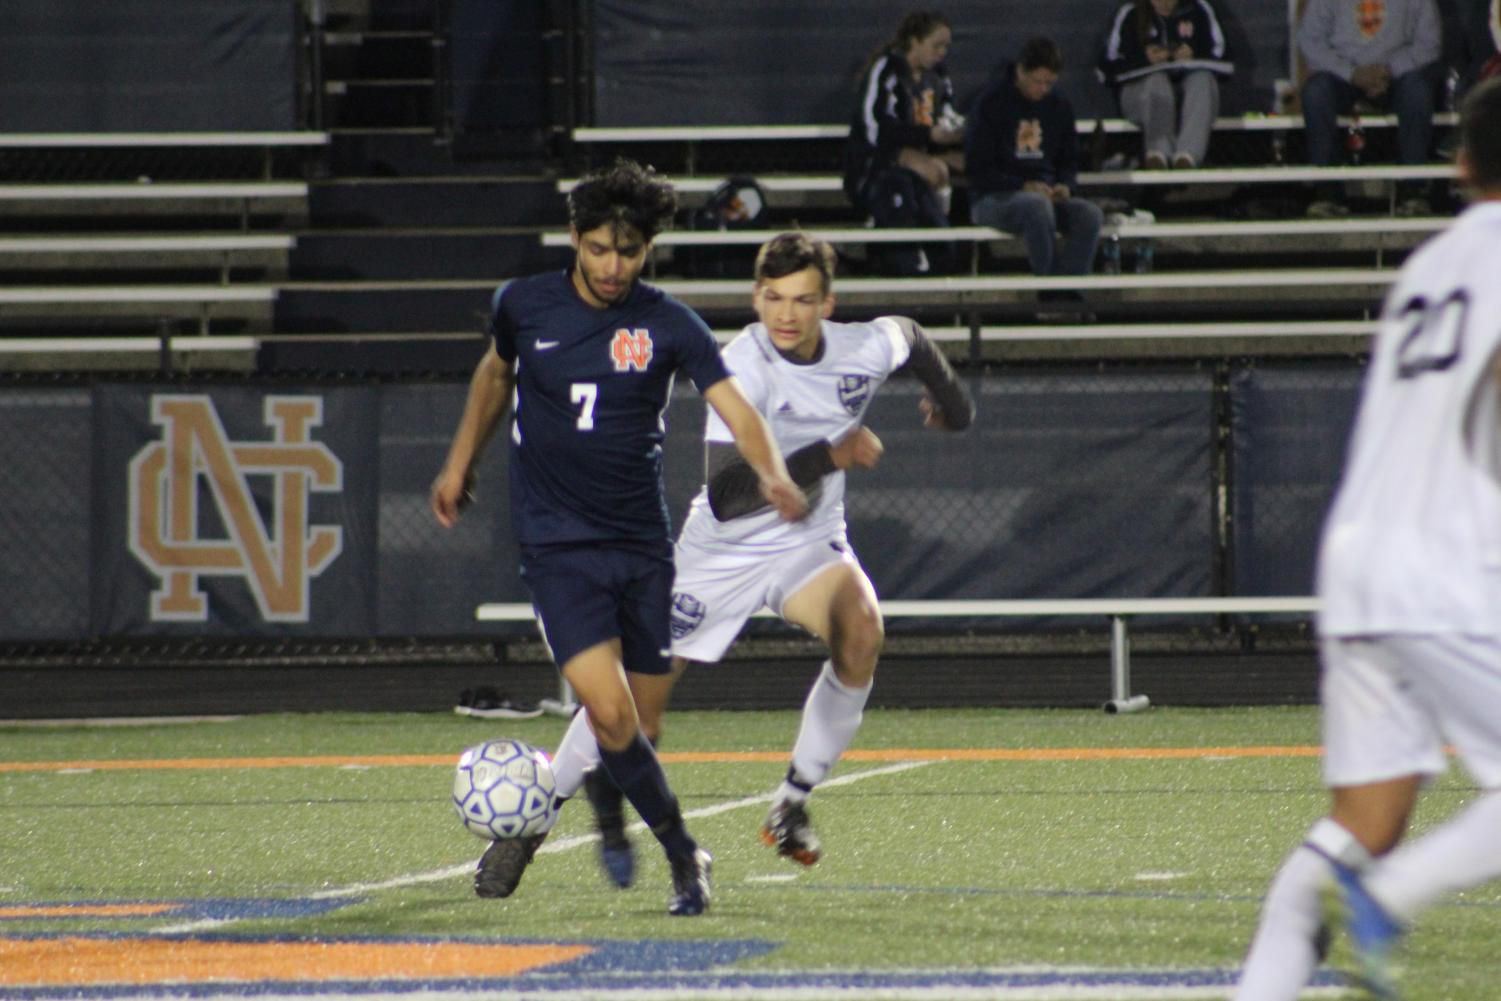 Senior striker, Bryan Estrada, defends the ball leading to Marietta's goal. Shortly after, Estrada takes a shot on the goal and misses but brings it back with a free kick, and puts Warriors ahead 1-0.